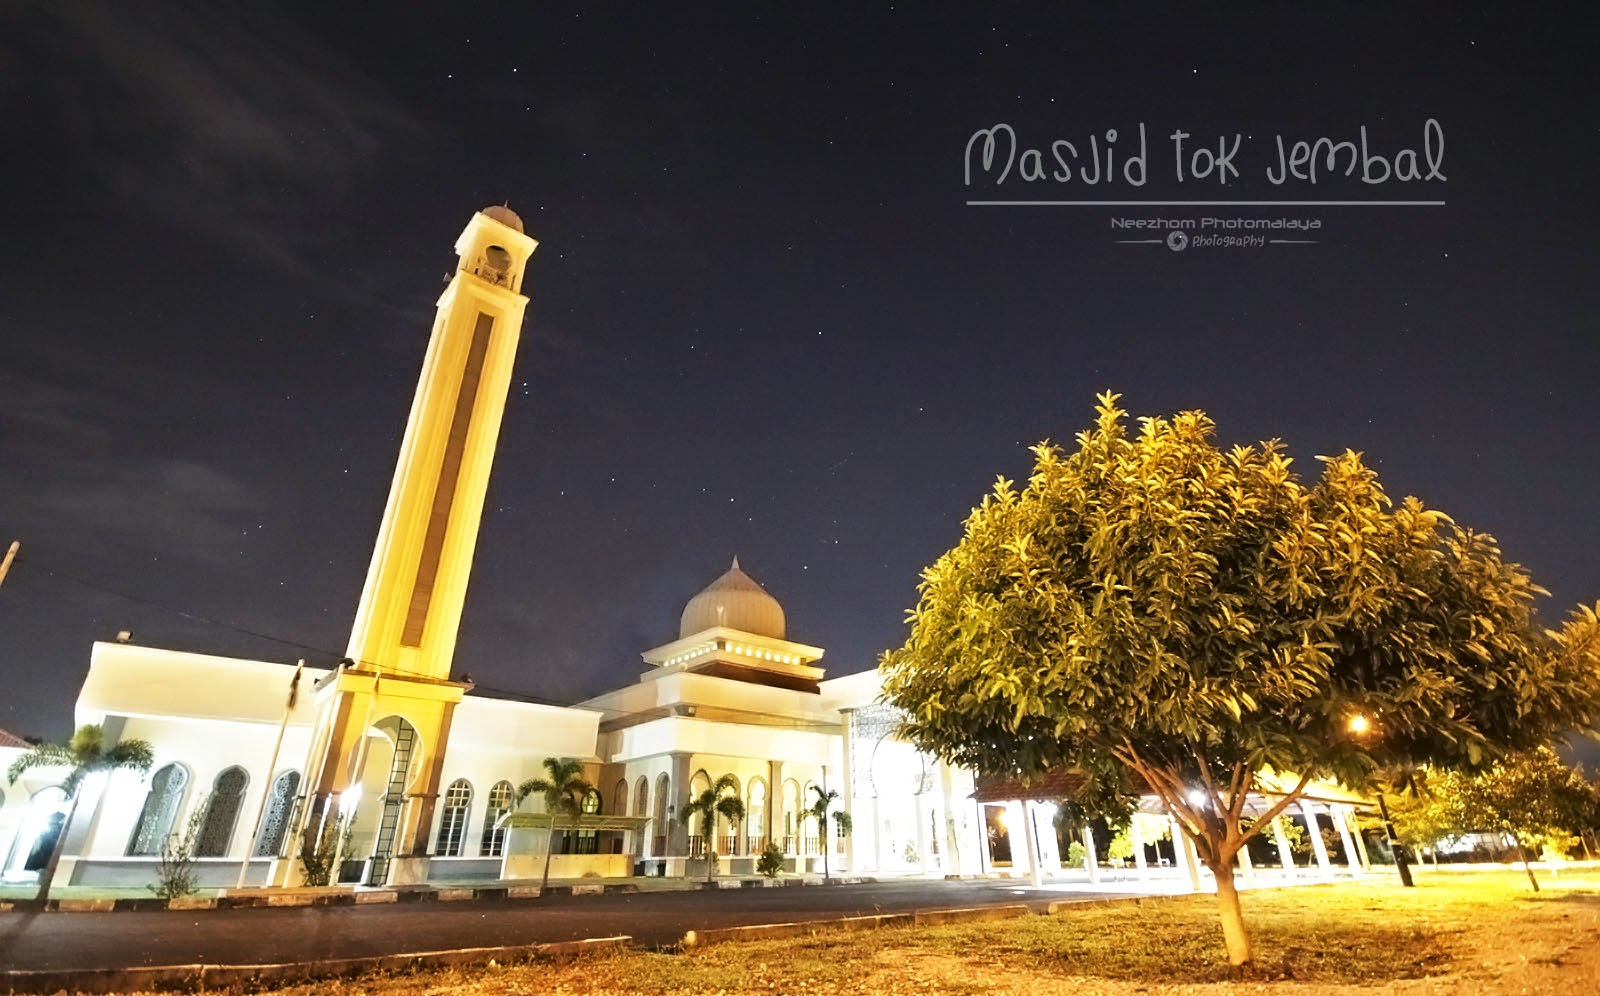 Masjid Tok Jembal night shot